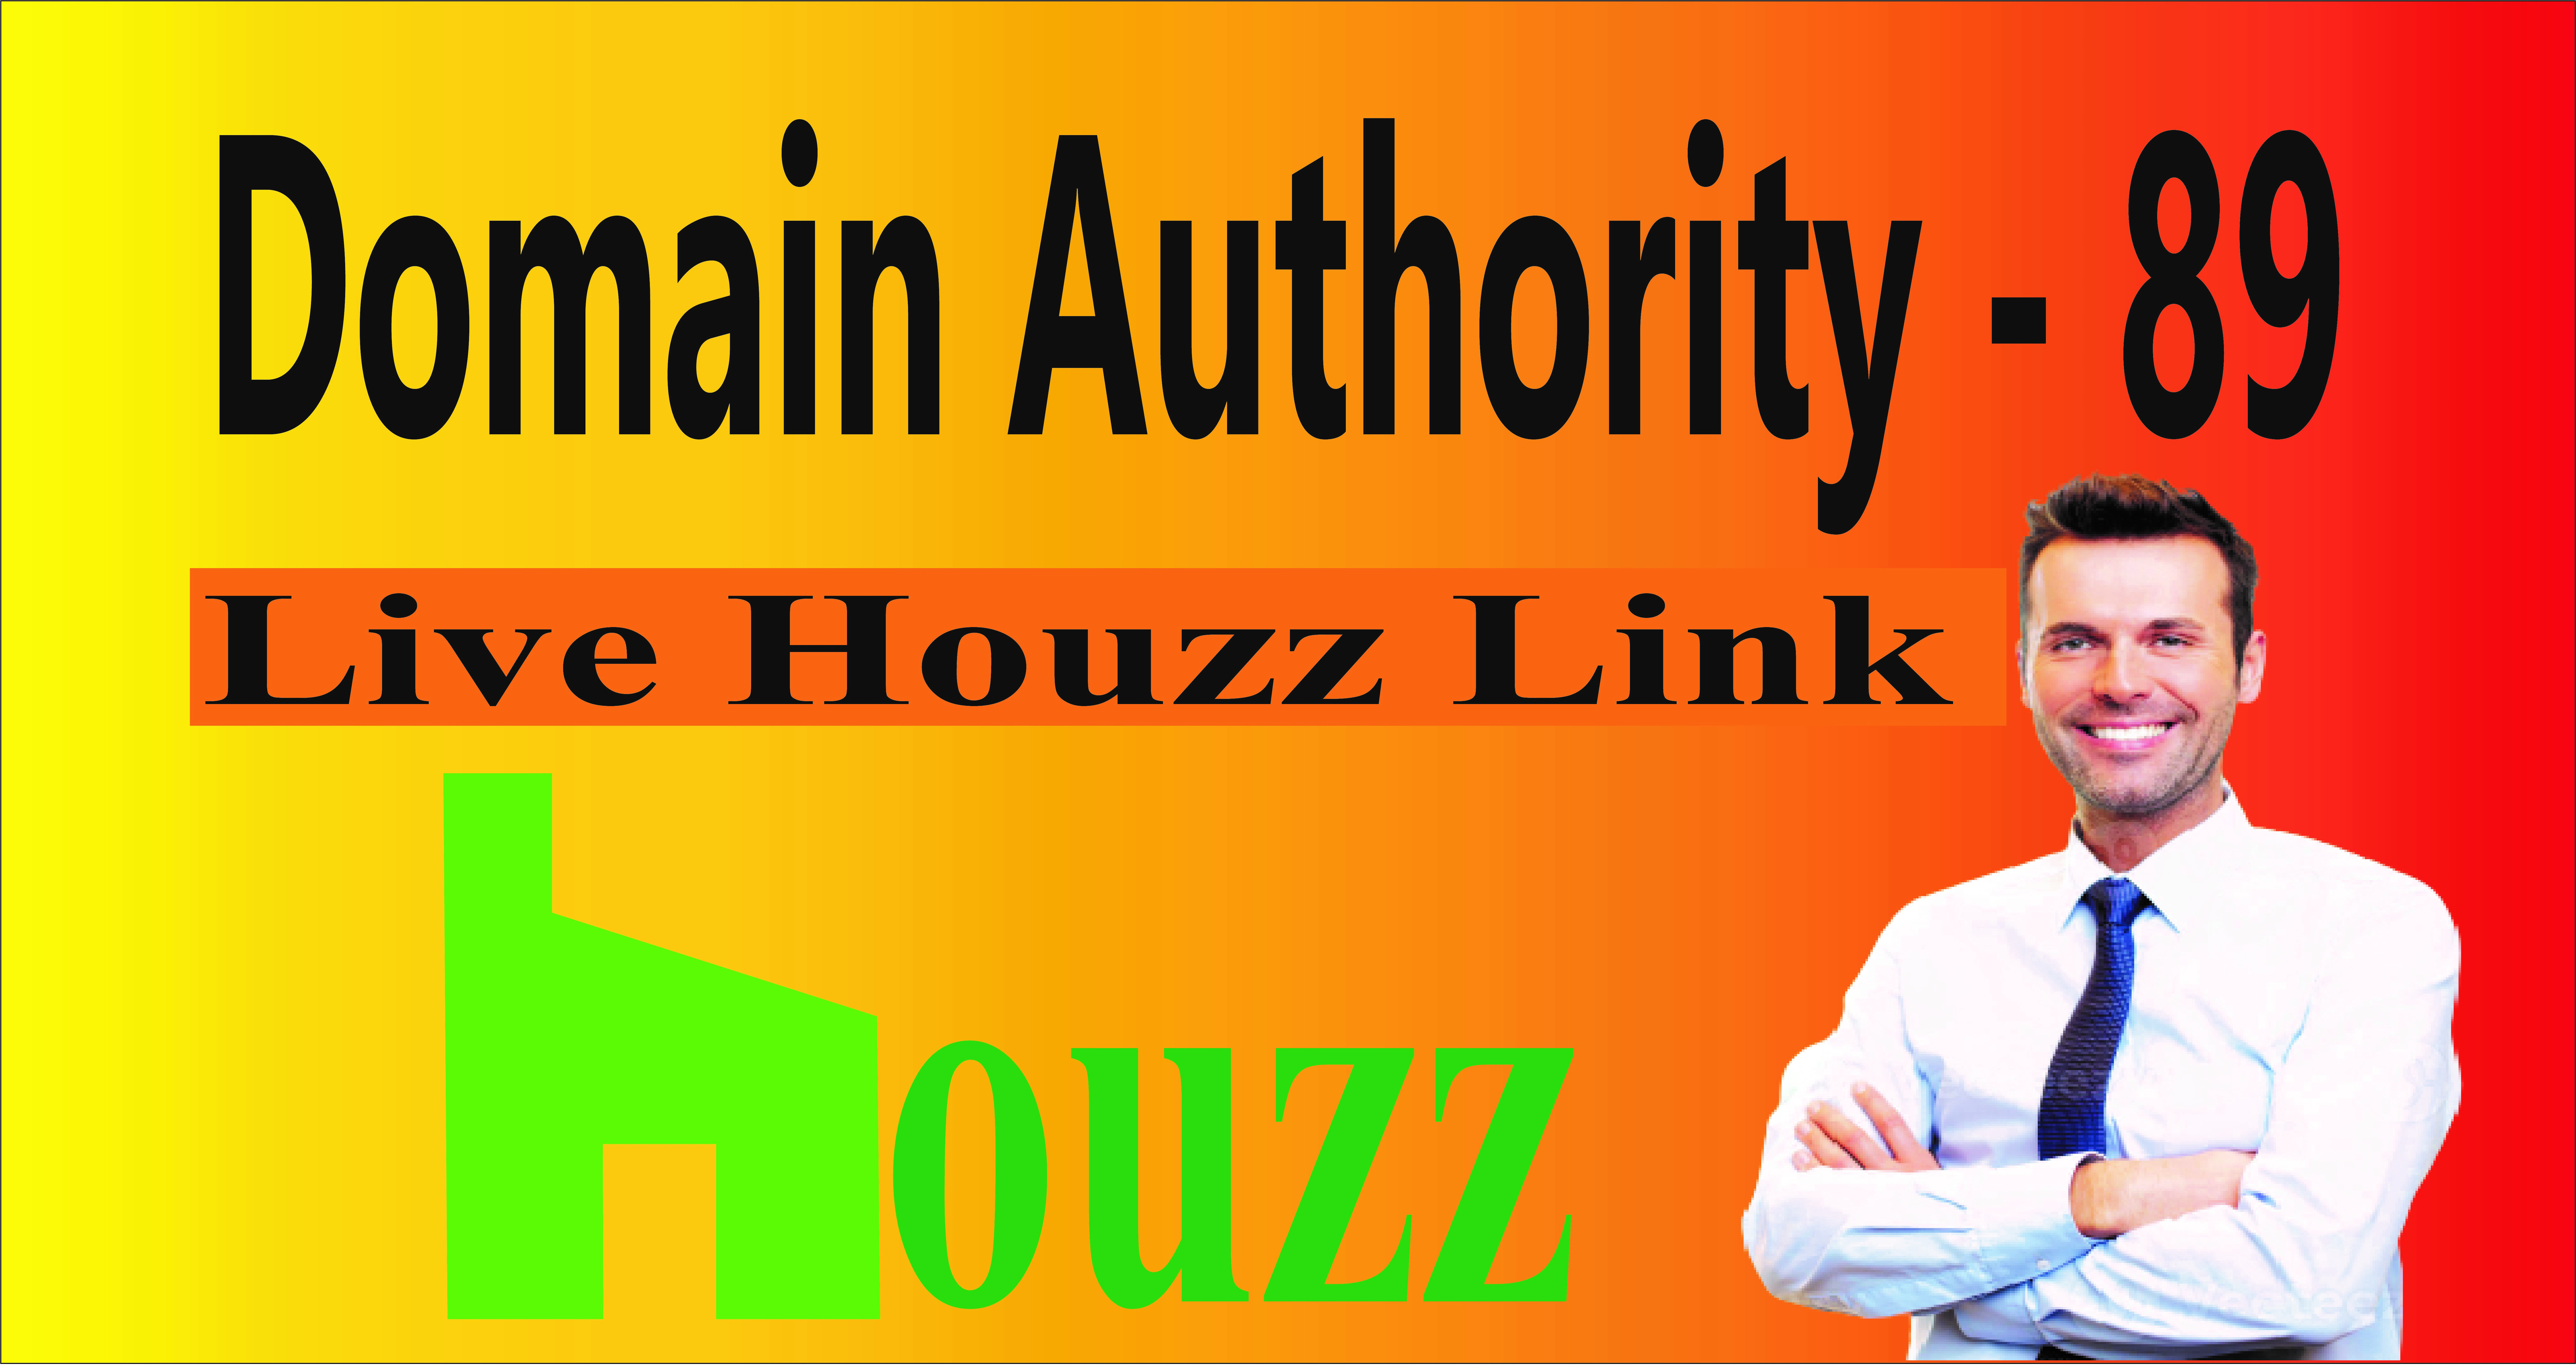 Create 1 SUPERSTRONG DA89 High Quality Backlinks From Houzz